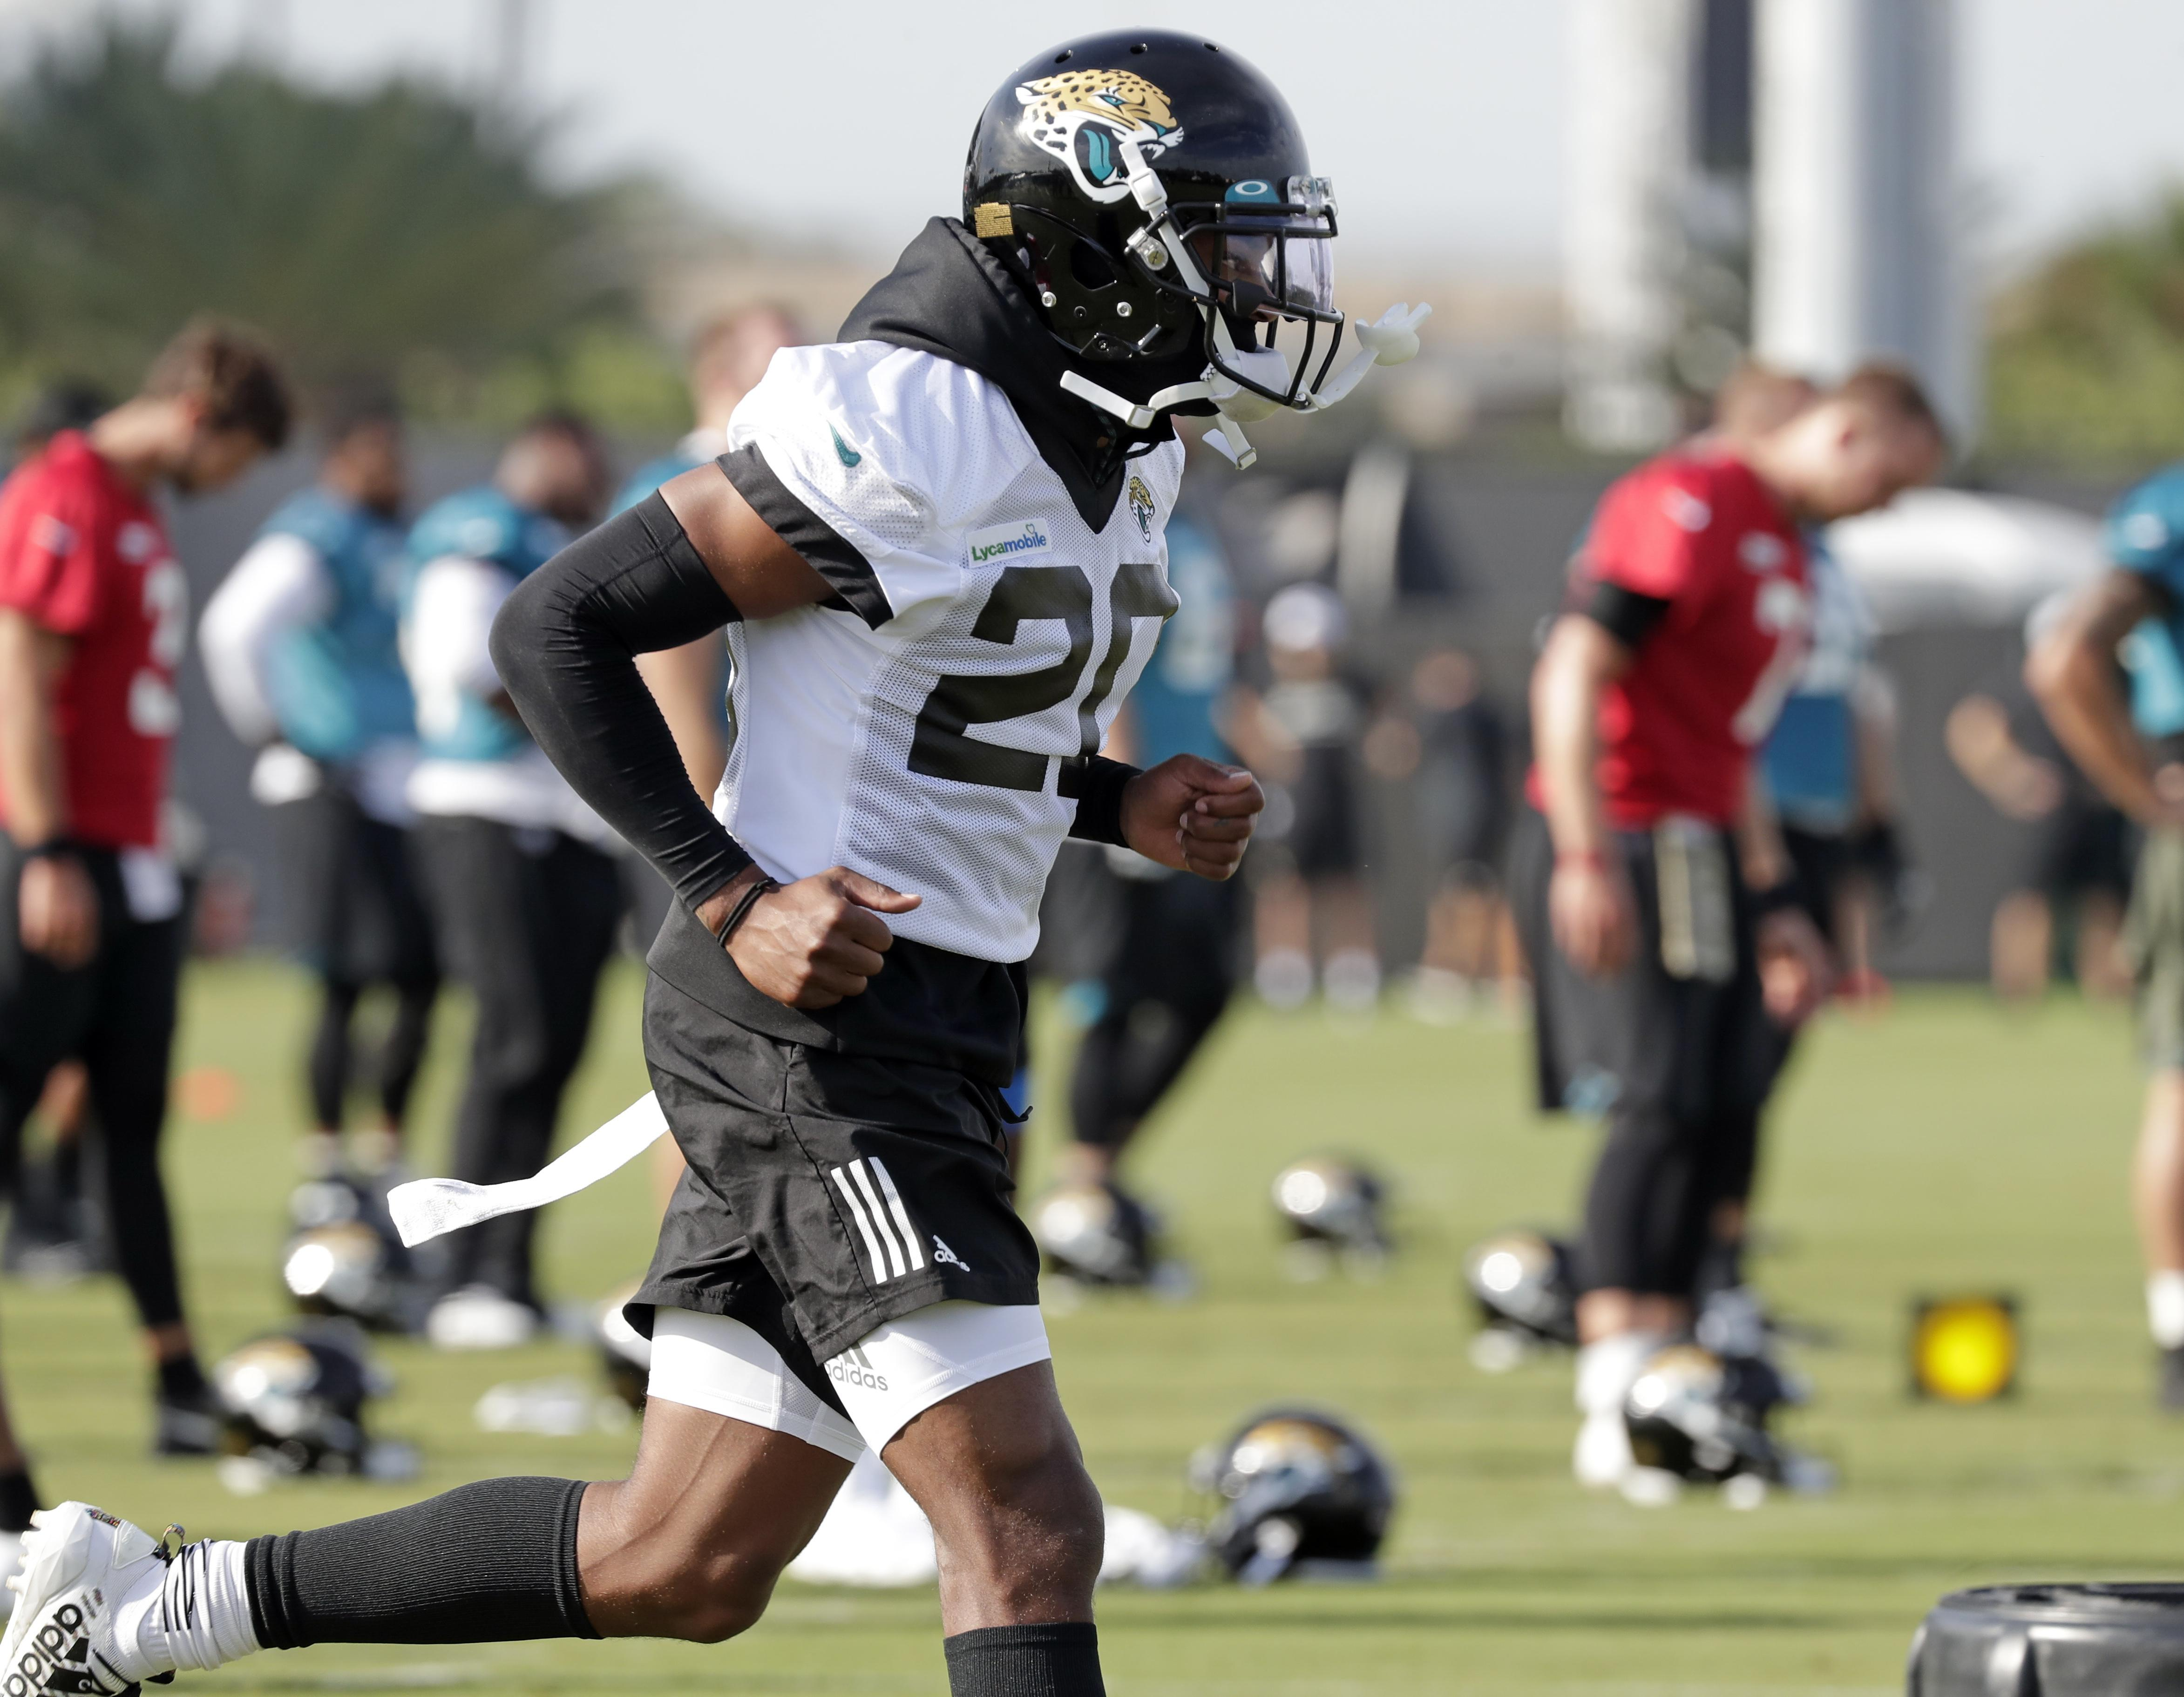 Jaguars' Ramsey says some took arrival stunt too seriously